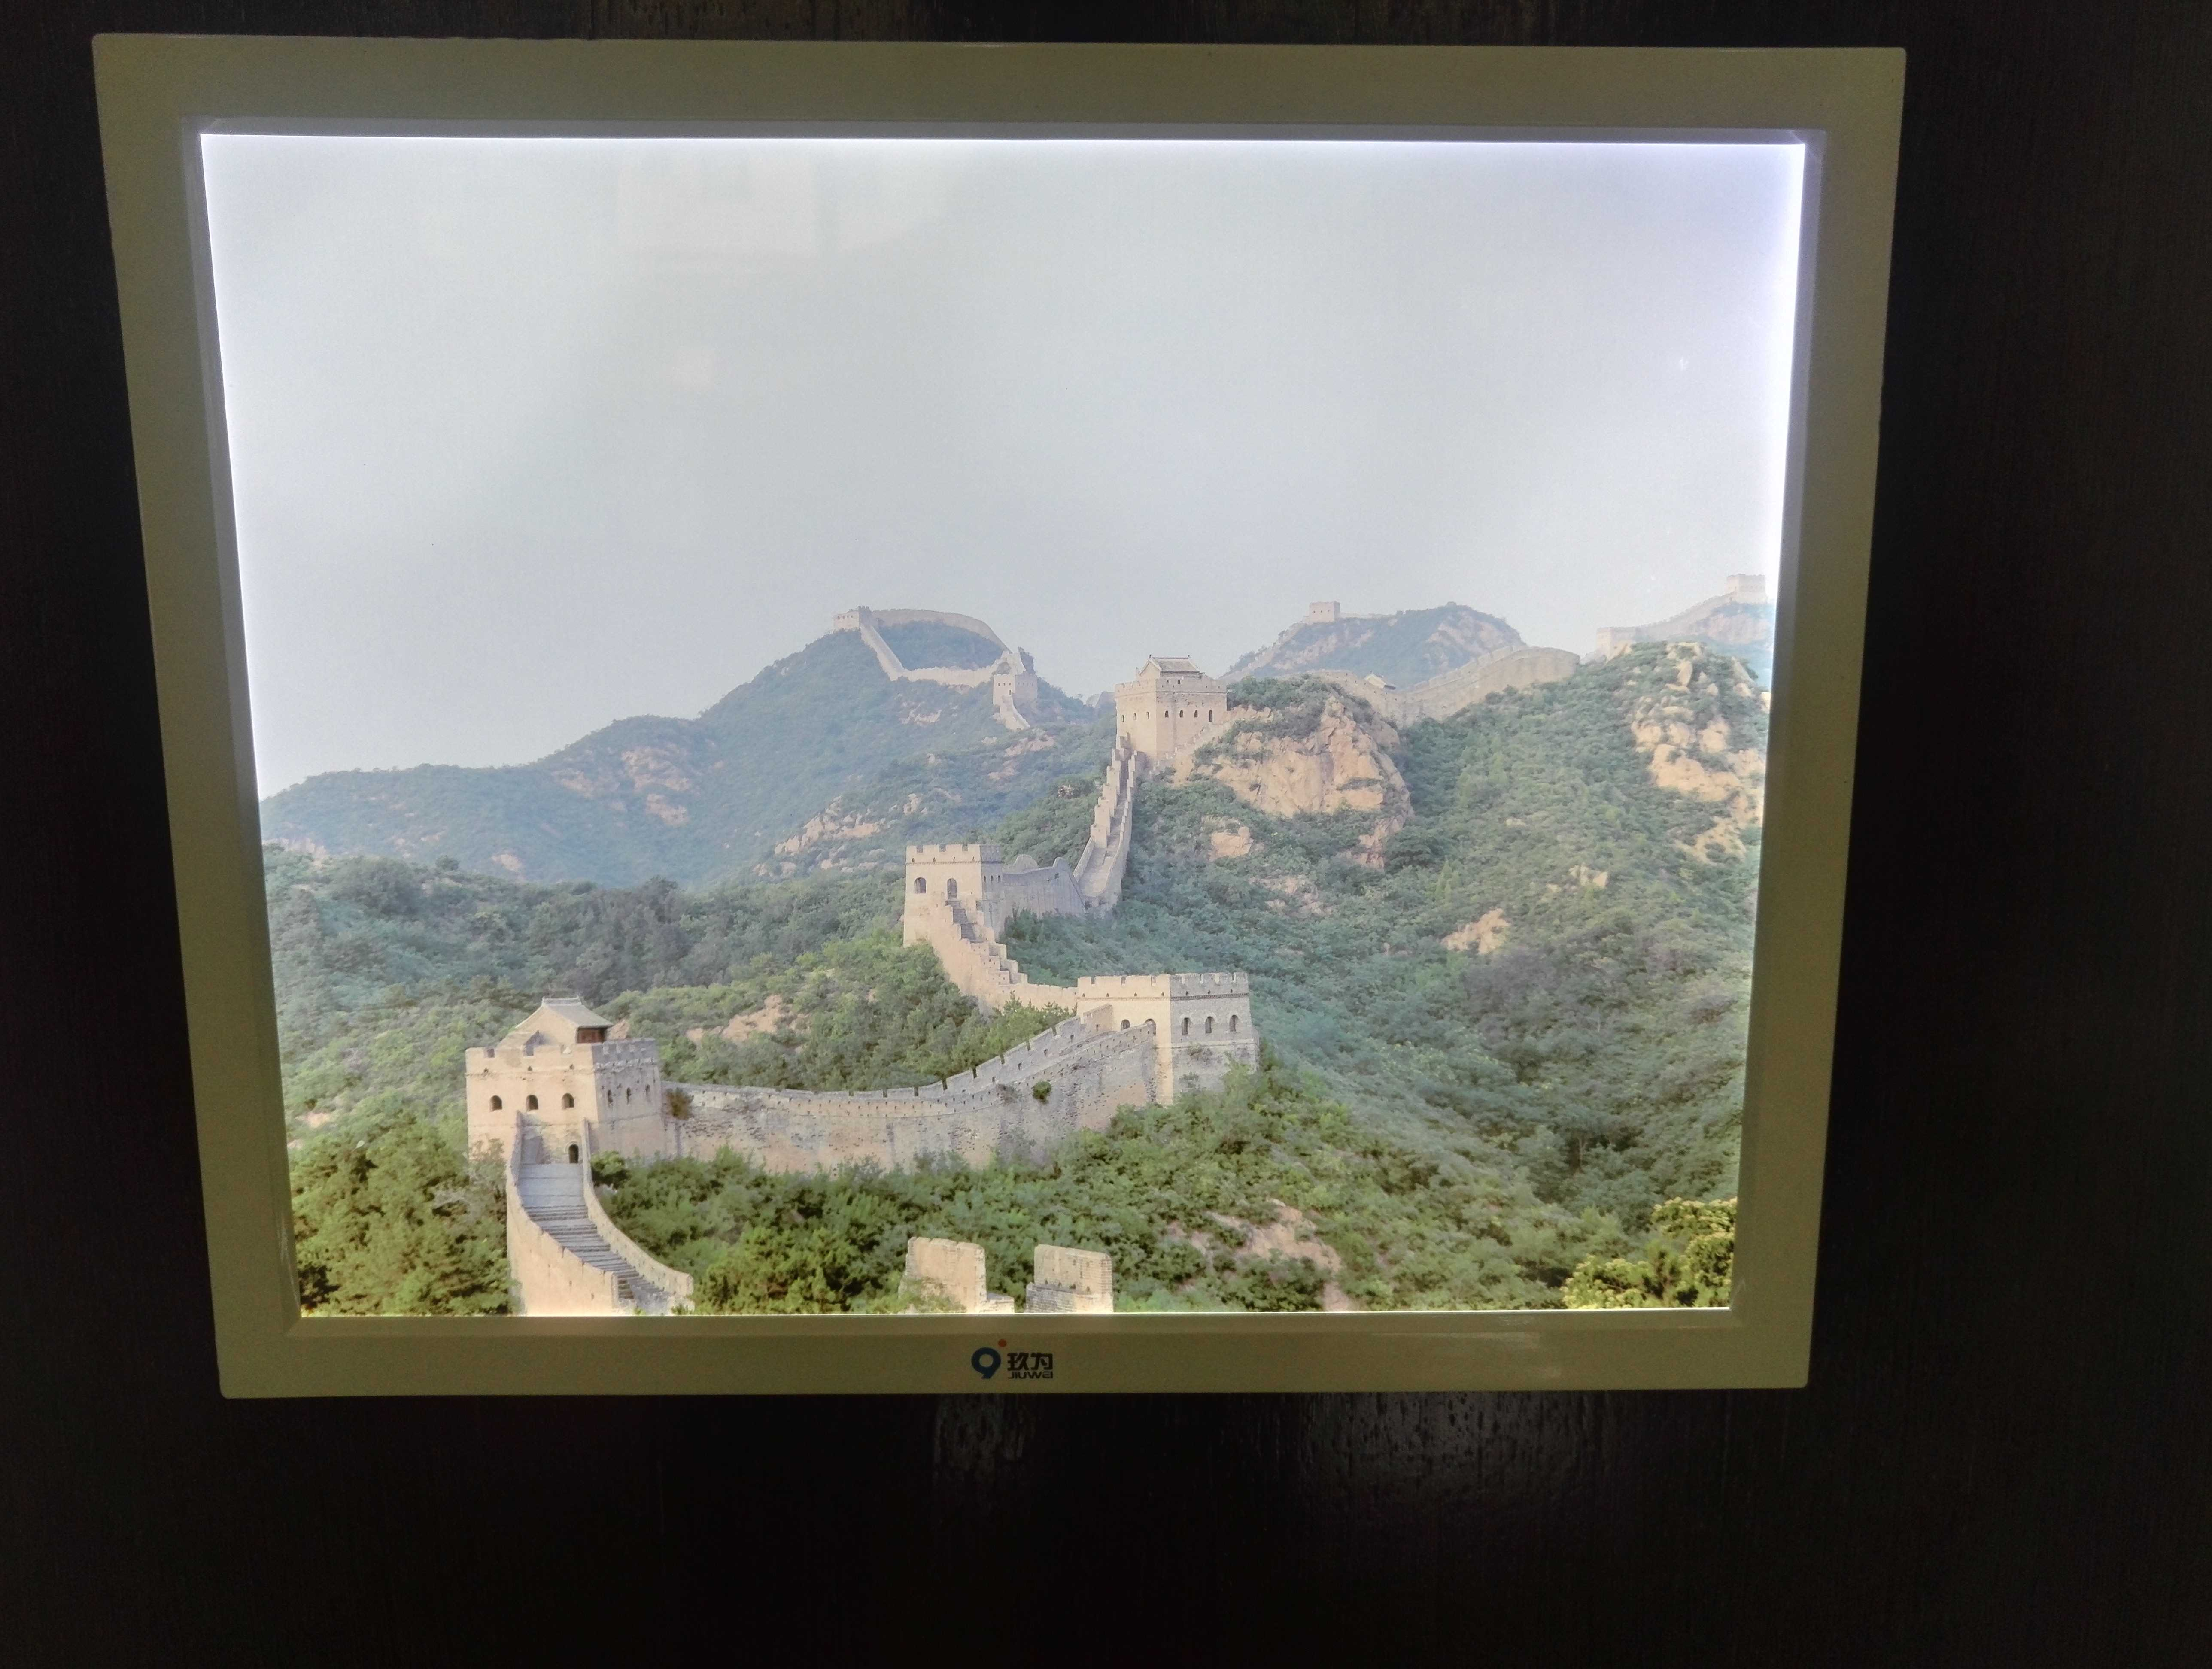 P6S LED Flat Photo Frame, With LED Battery, With Sound Control